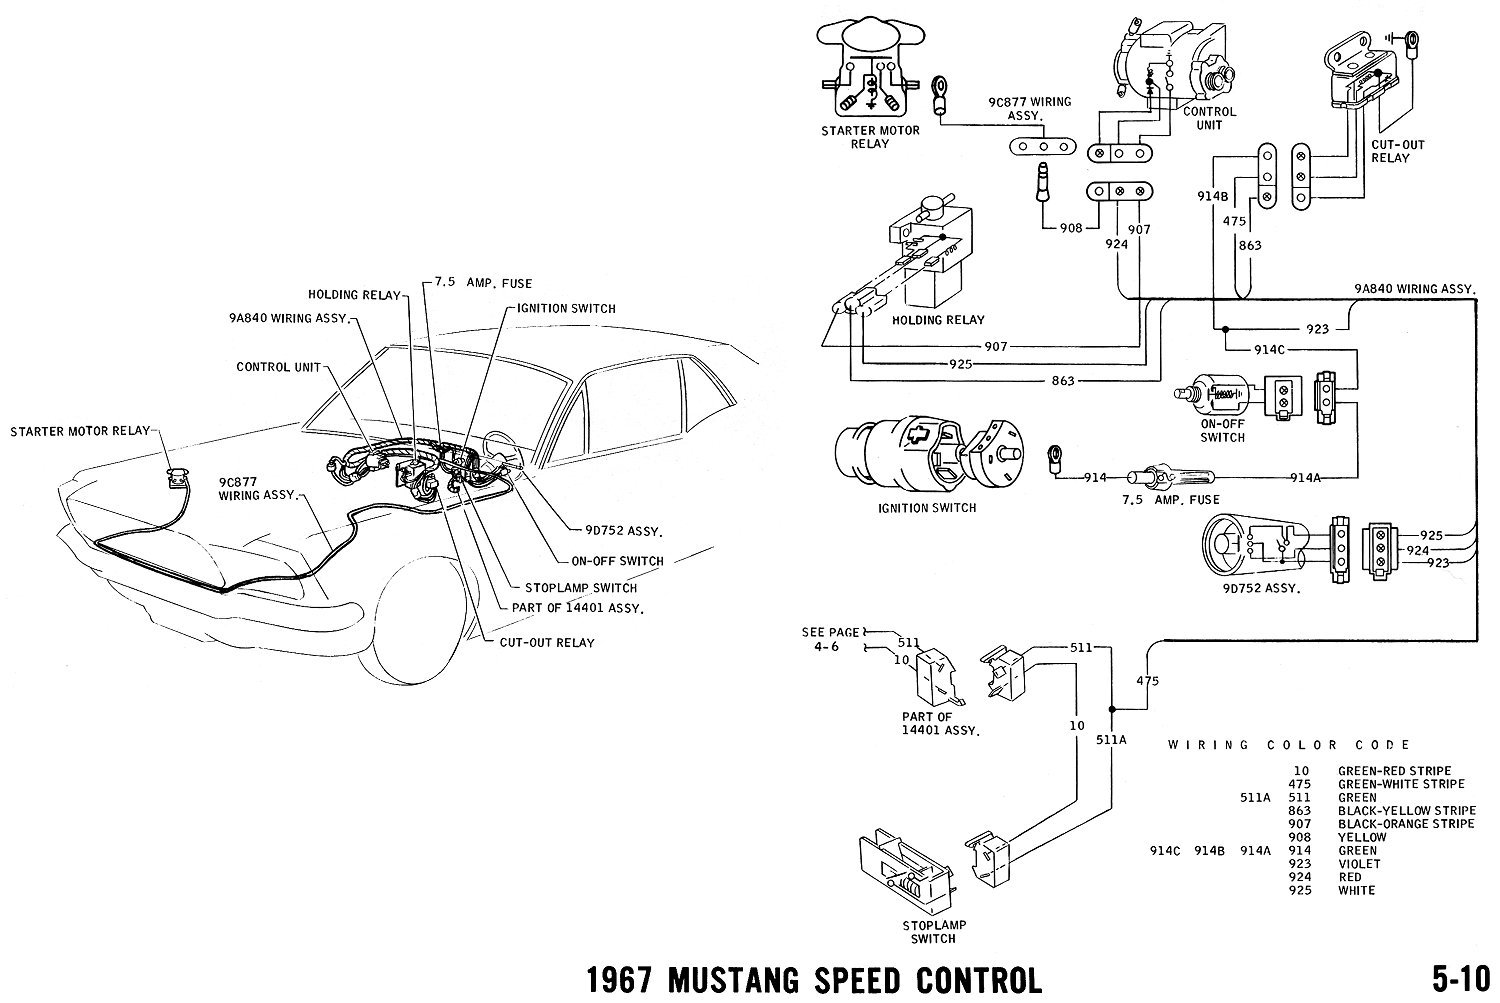 1967 mustang wiring and vacuum diagrams average joe restoration pictorial and schematic vacuum diagram sciox Gallery